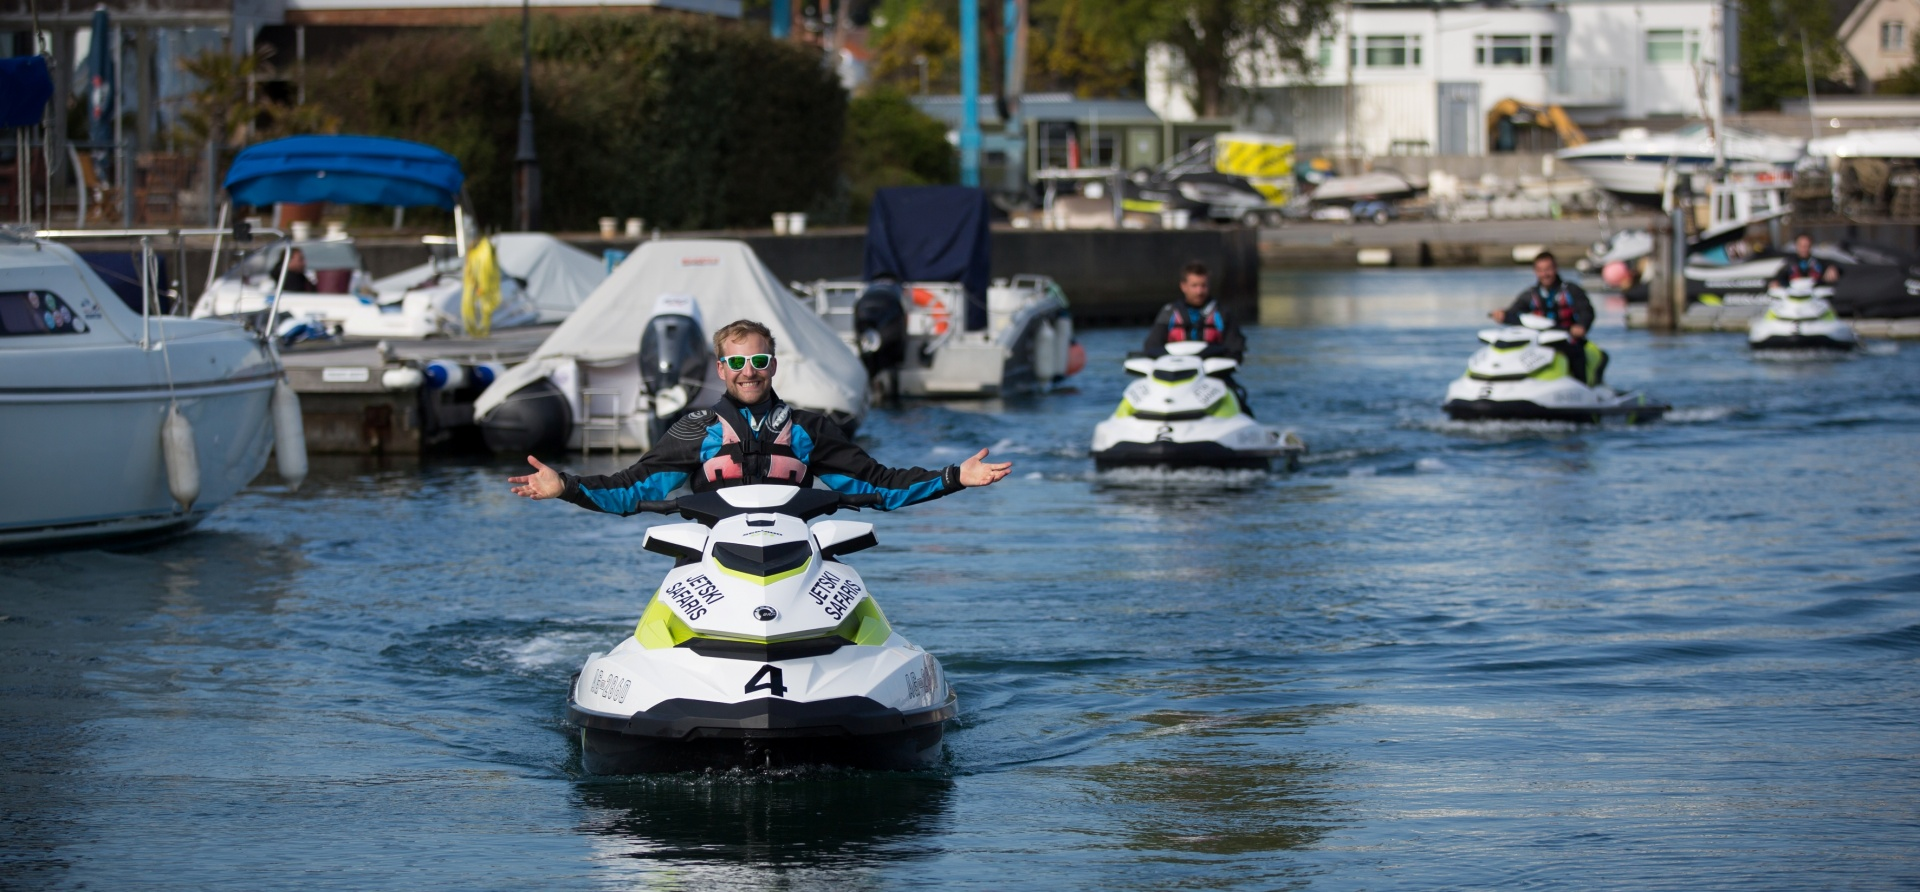 Bournemouth Open Water Jet Ski Safari Experience for Two-3